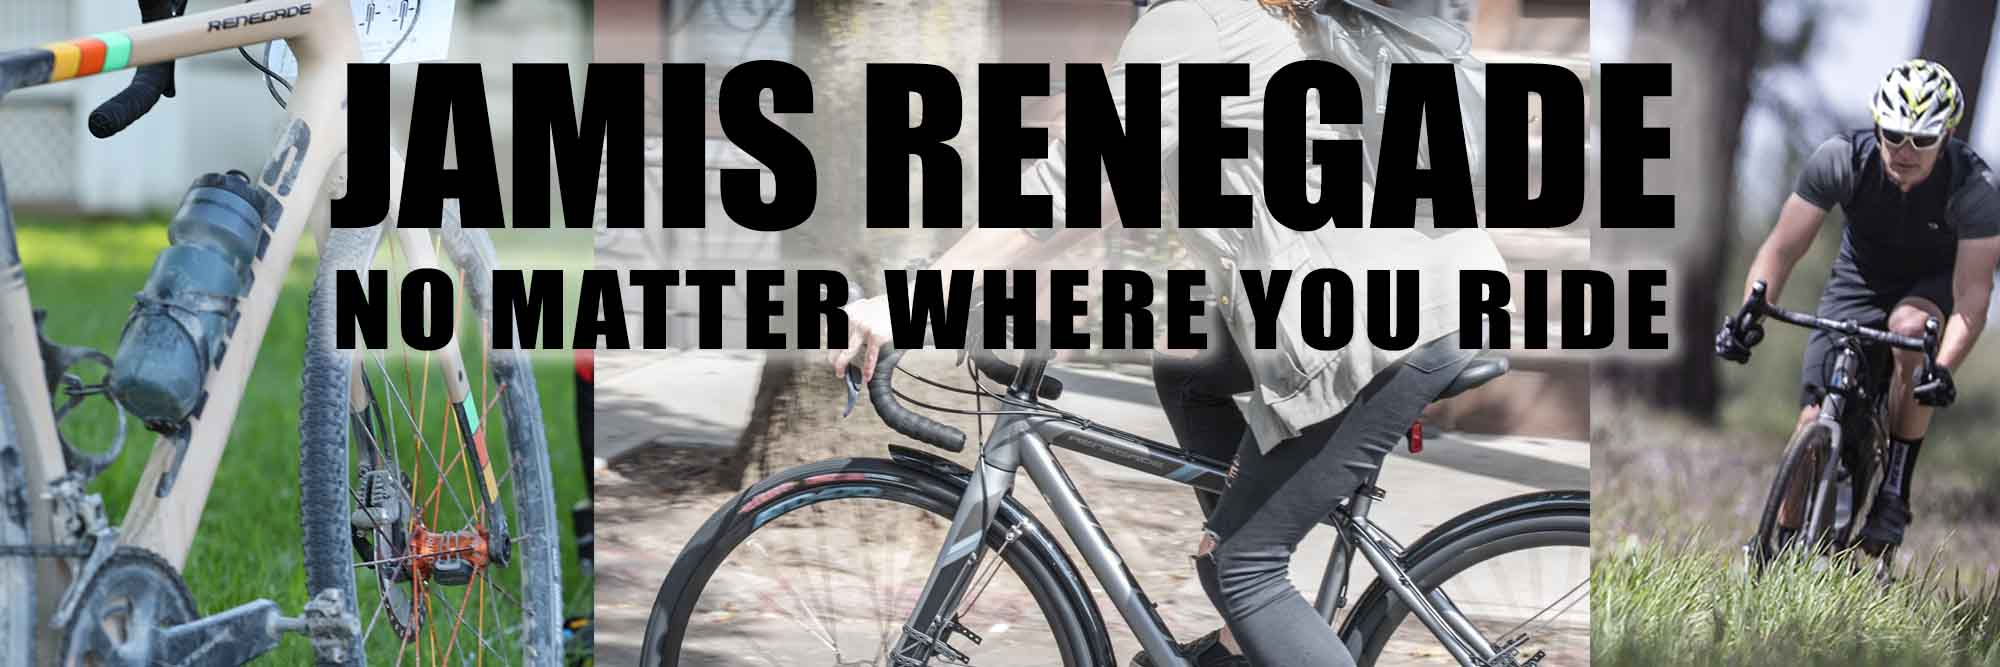 Jamis Renegade - For No Matter Where you Ride